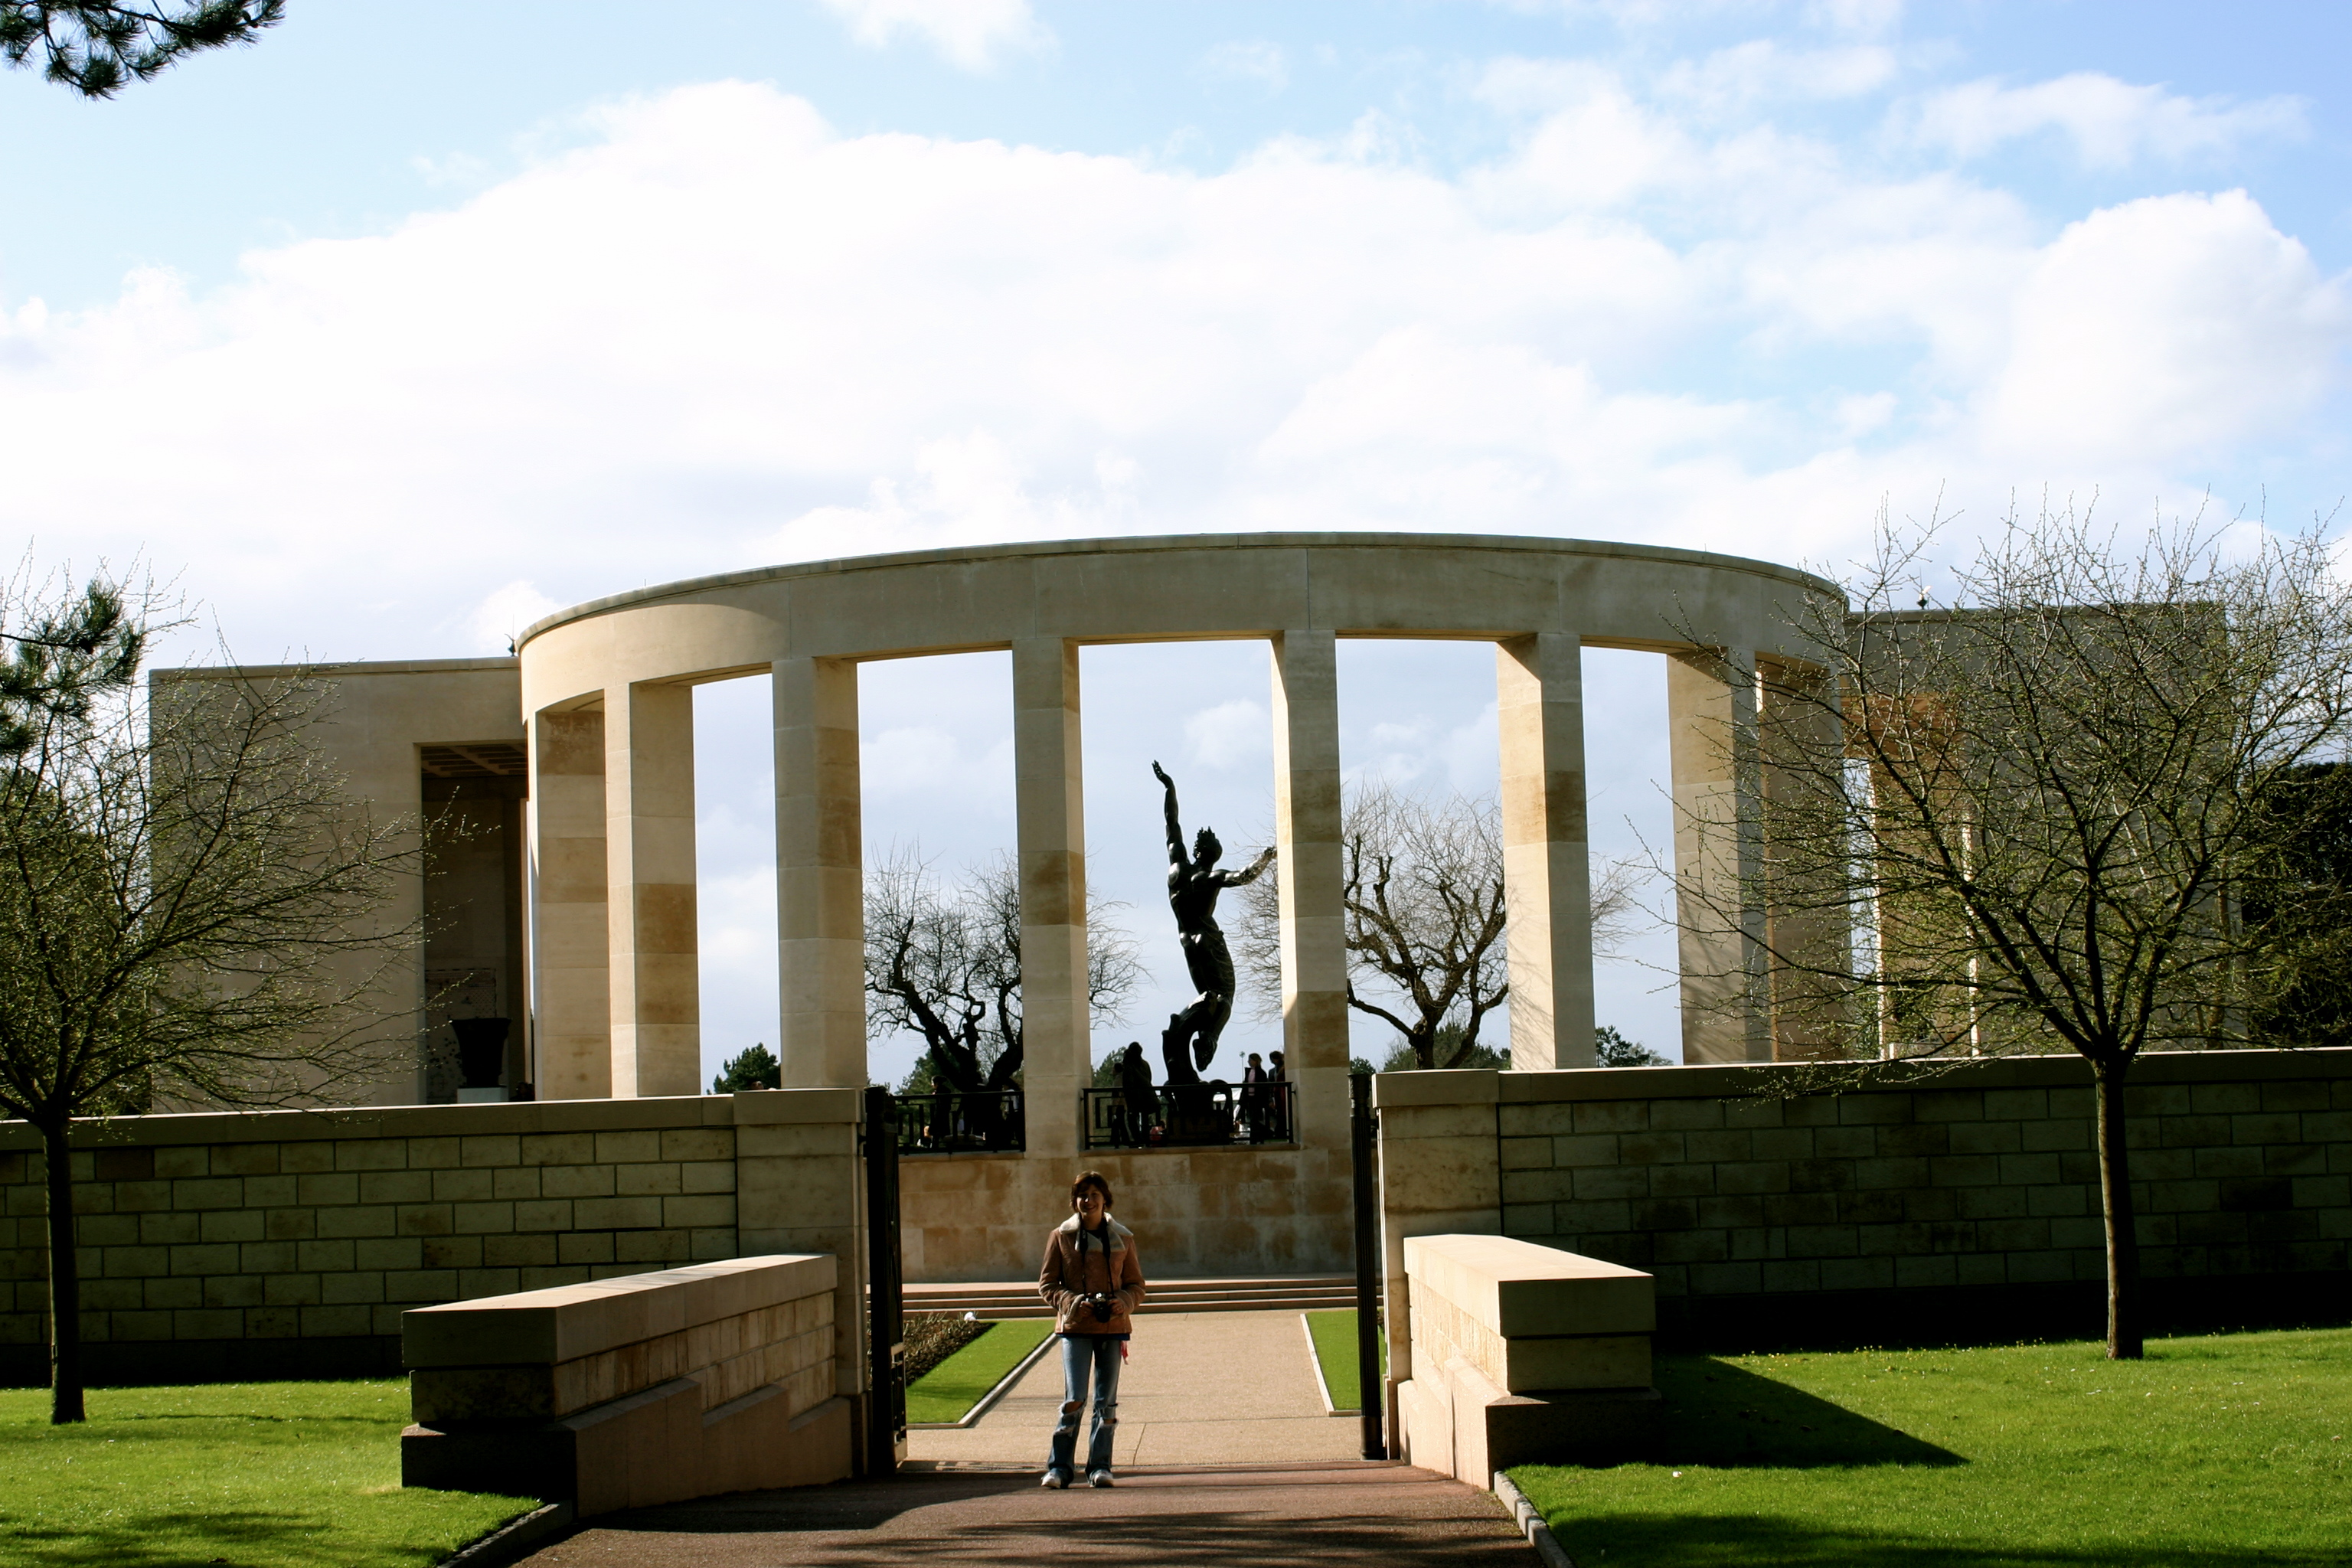 The Memorial and Wall of the Missing.